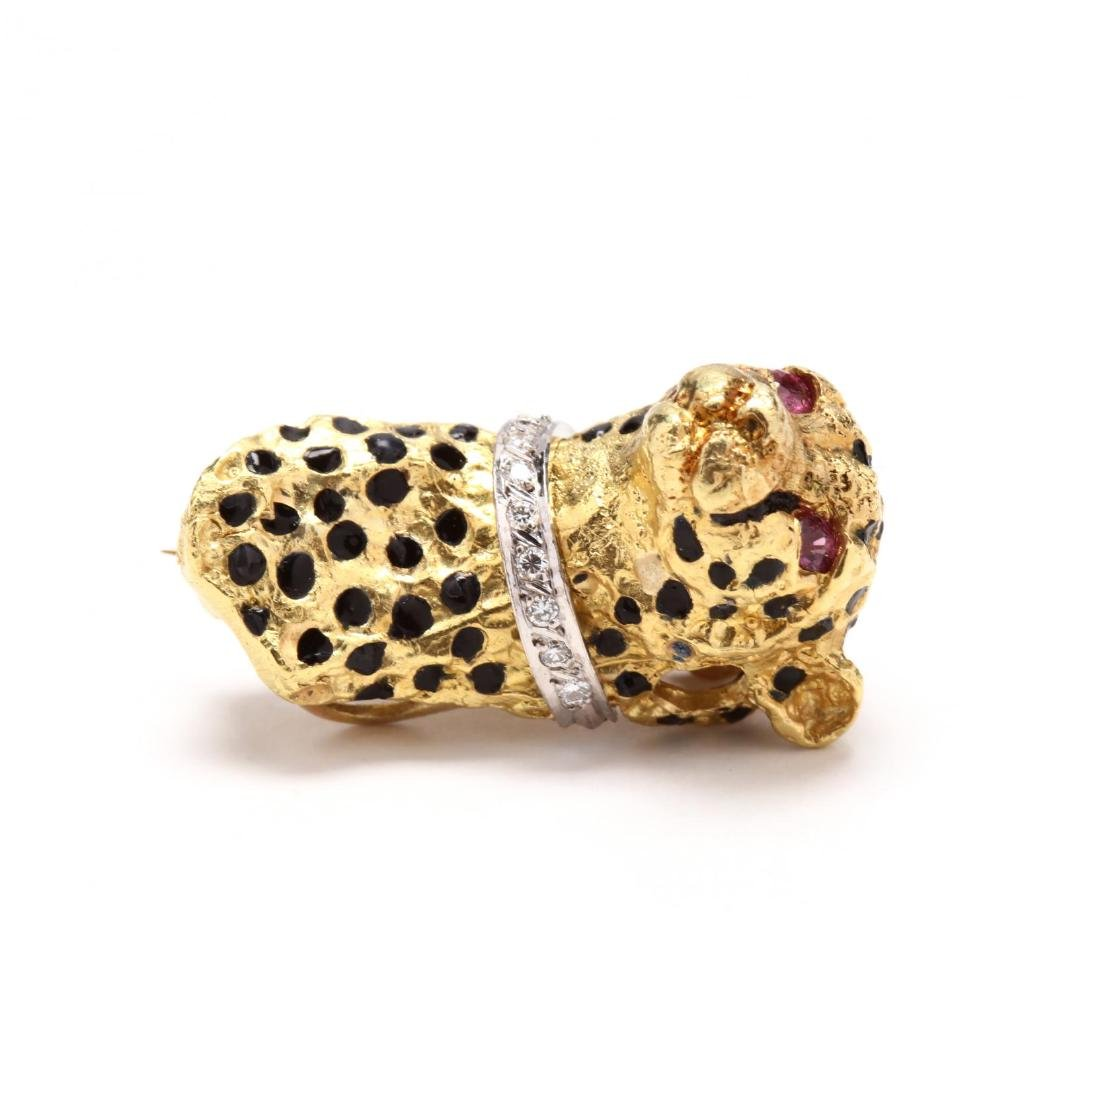 18KT Gold, Enamel, and Gem Set Cheetah Earrings and - 7